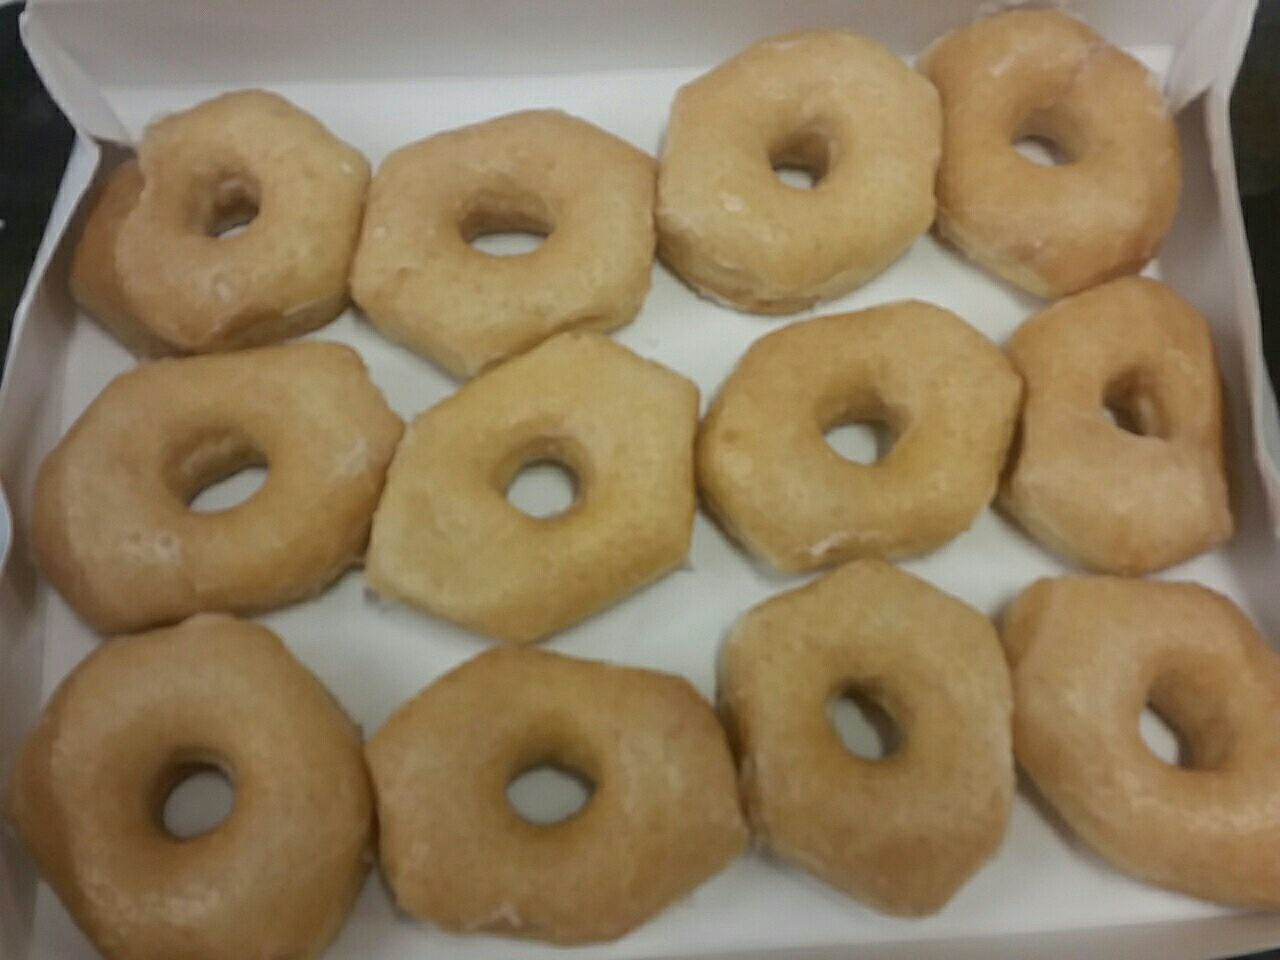 My boss bought low-polygon donuts for us today.